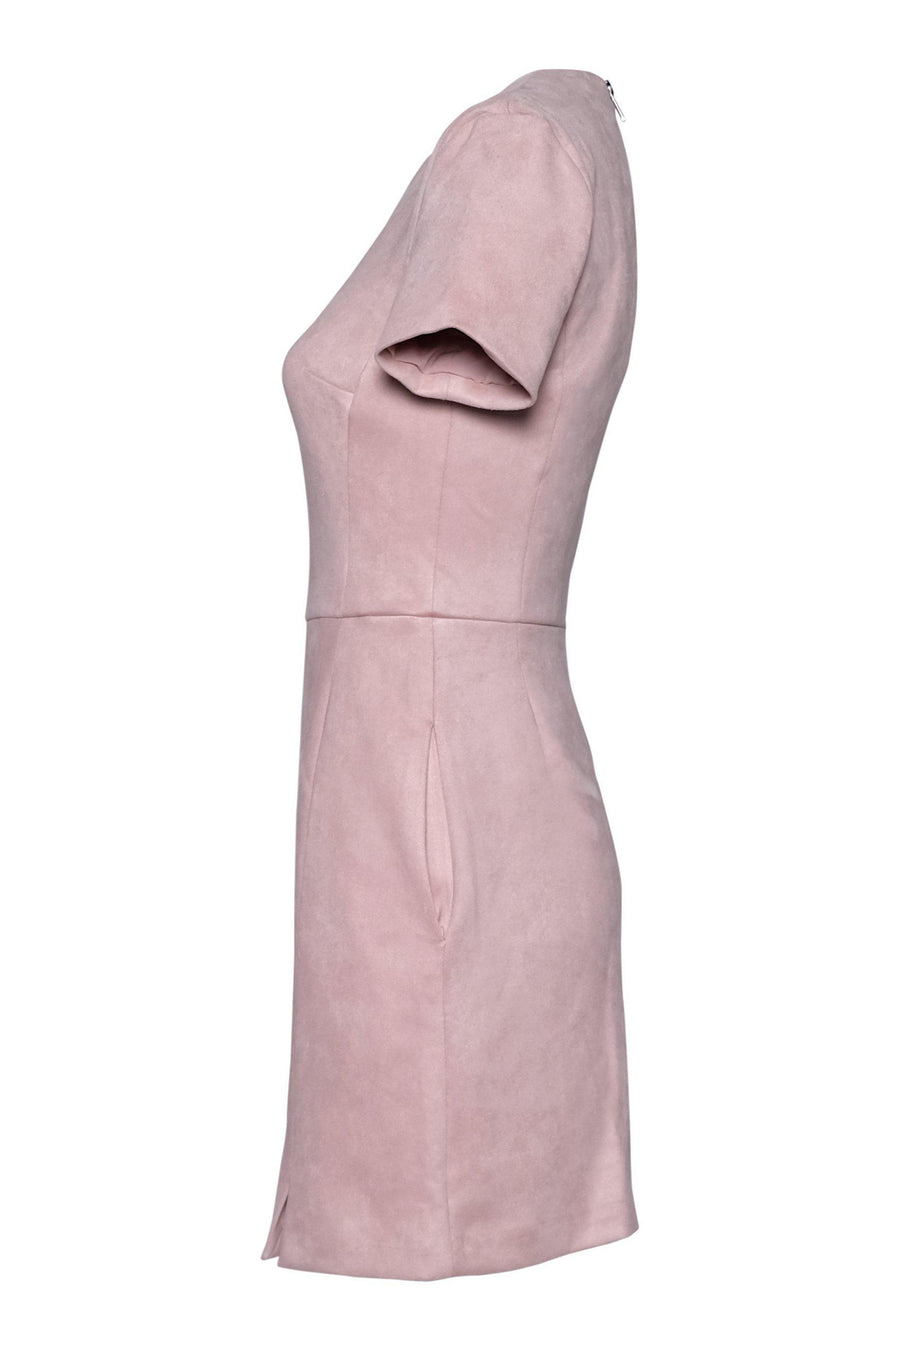 08d942194c5 ... Dresses Faux Suede A-line Dress French Connection Conspiracy New York